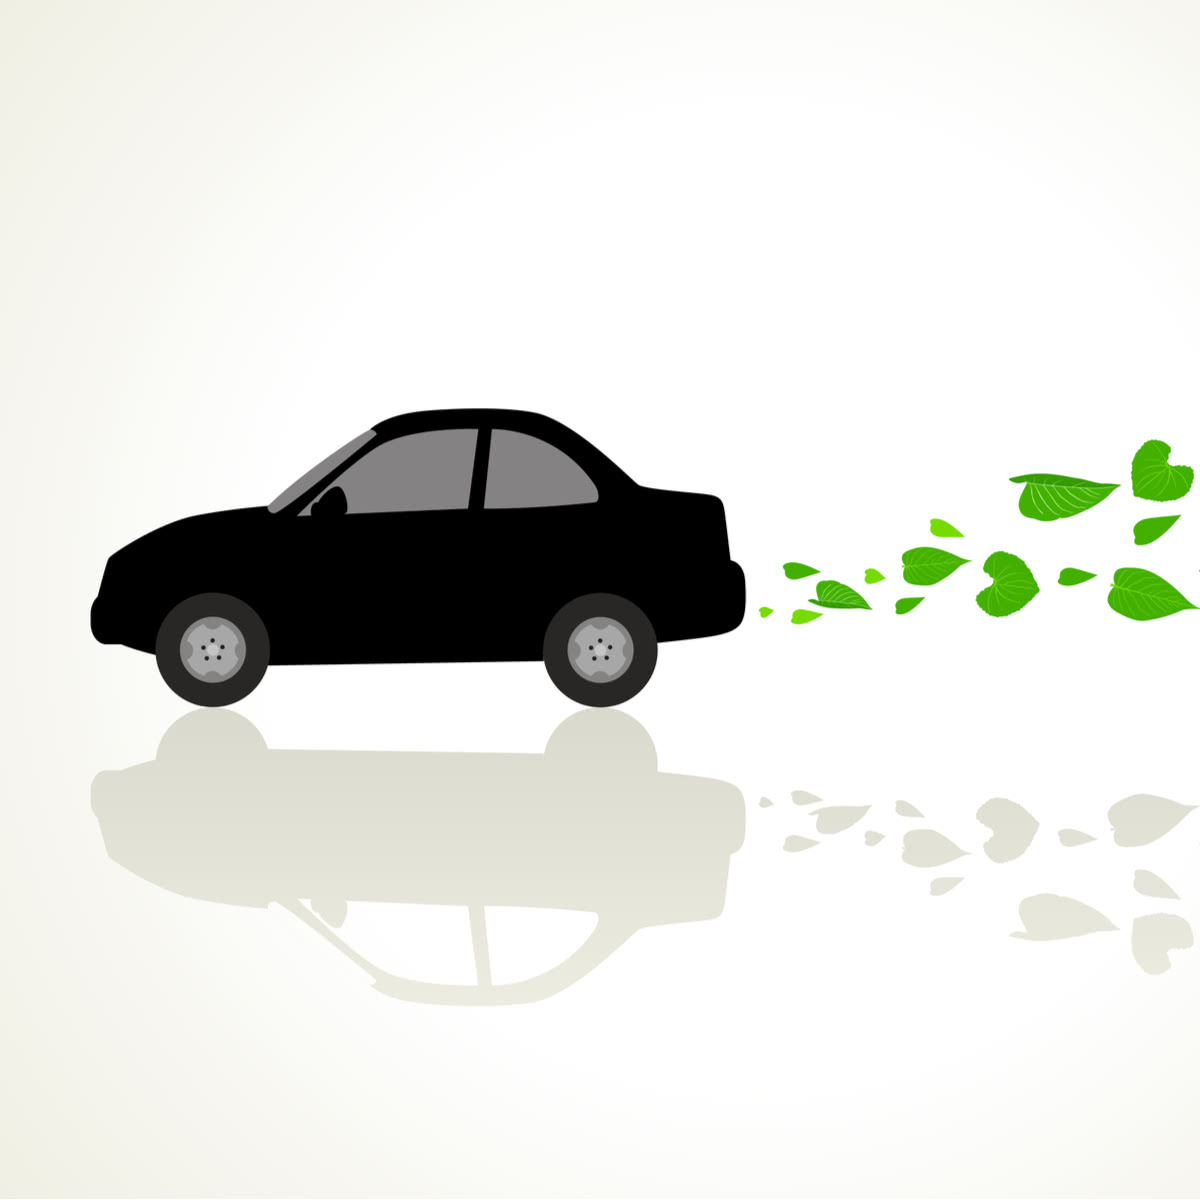 The road to zero-emission vehicles: emissions standards from 2025 and beyond